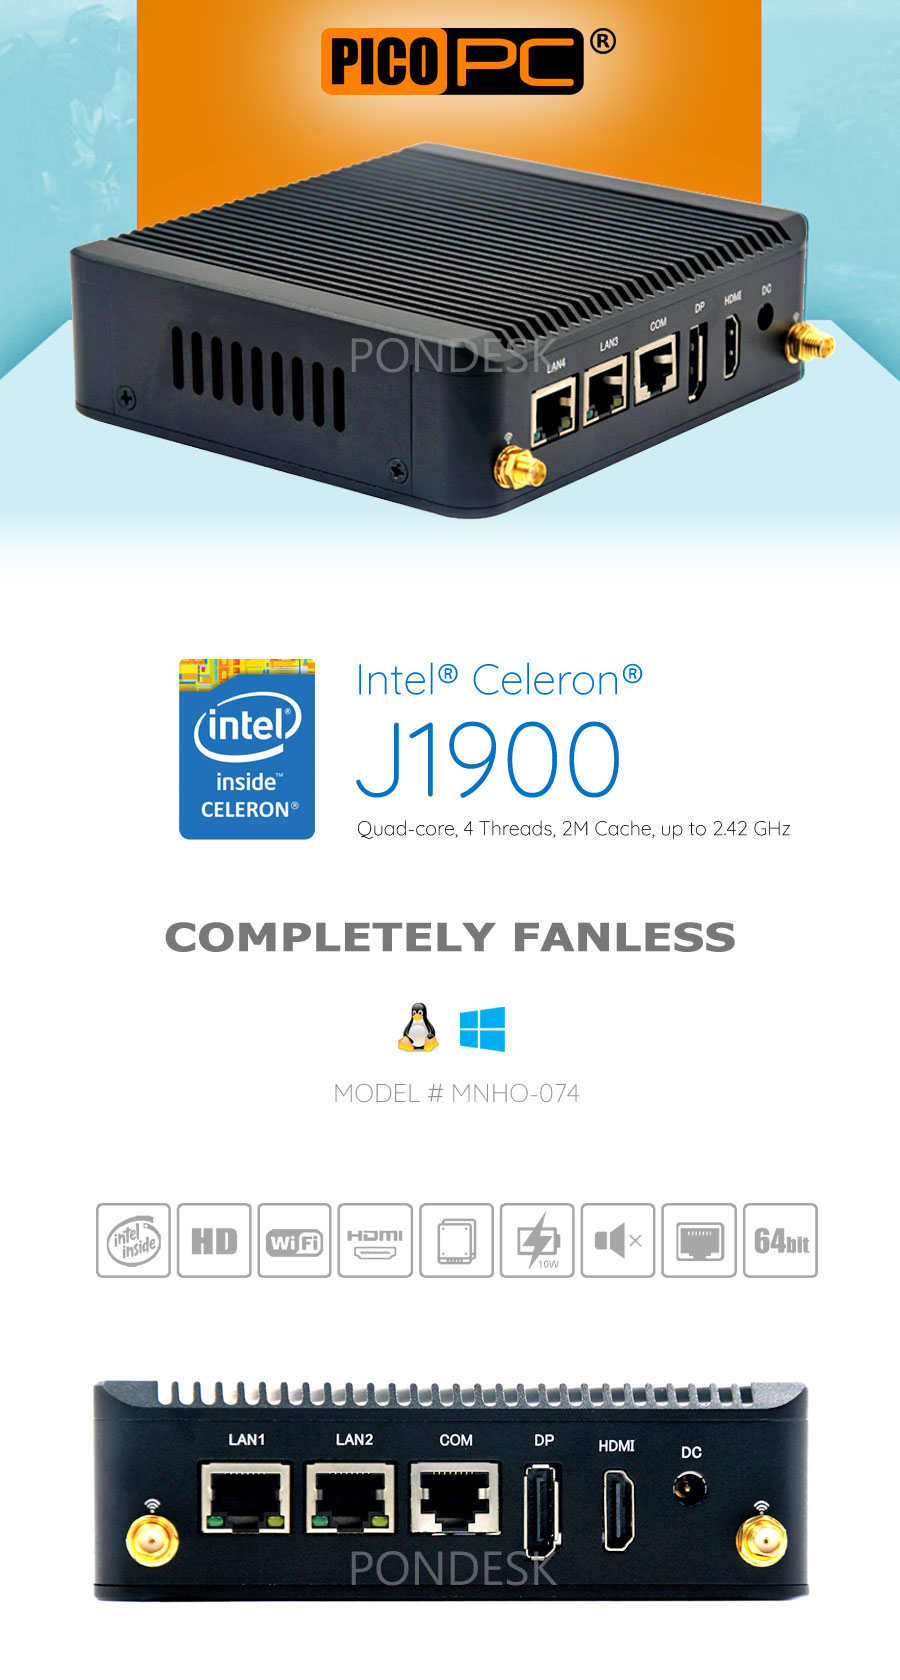 Intel® J1900 3G/4G 2 LAN 1 COM Dual Display Fanless Mini PC - MNHO-074 | Image